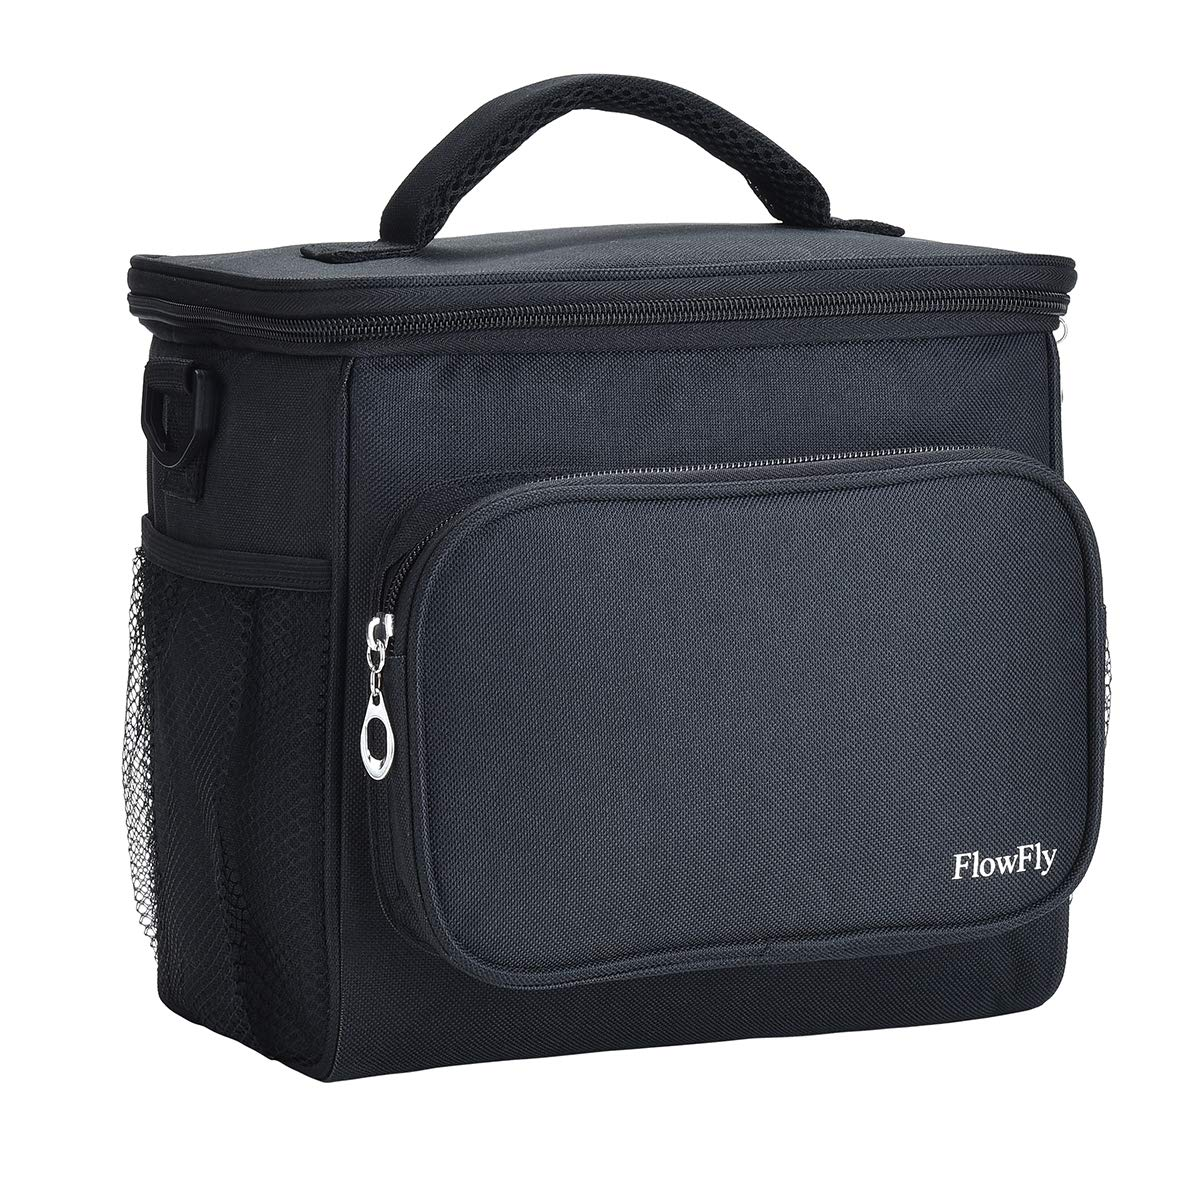 FlowFly Insulated Lunch Bag Adult Thermal Lunch Box Large Cooler Tote Bag for Men Women with Adjustable Strap Front and Dual Large Mesh Side Pockets(Black)